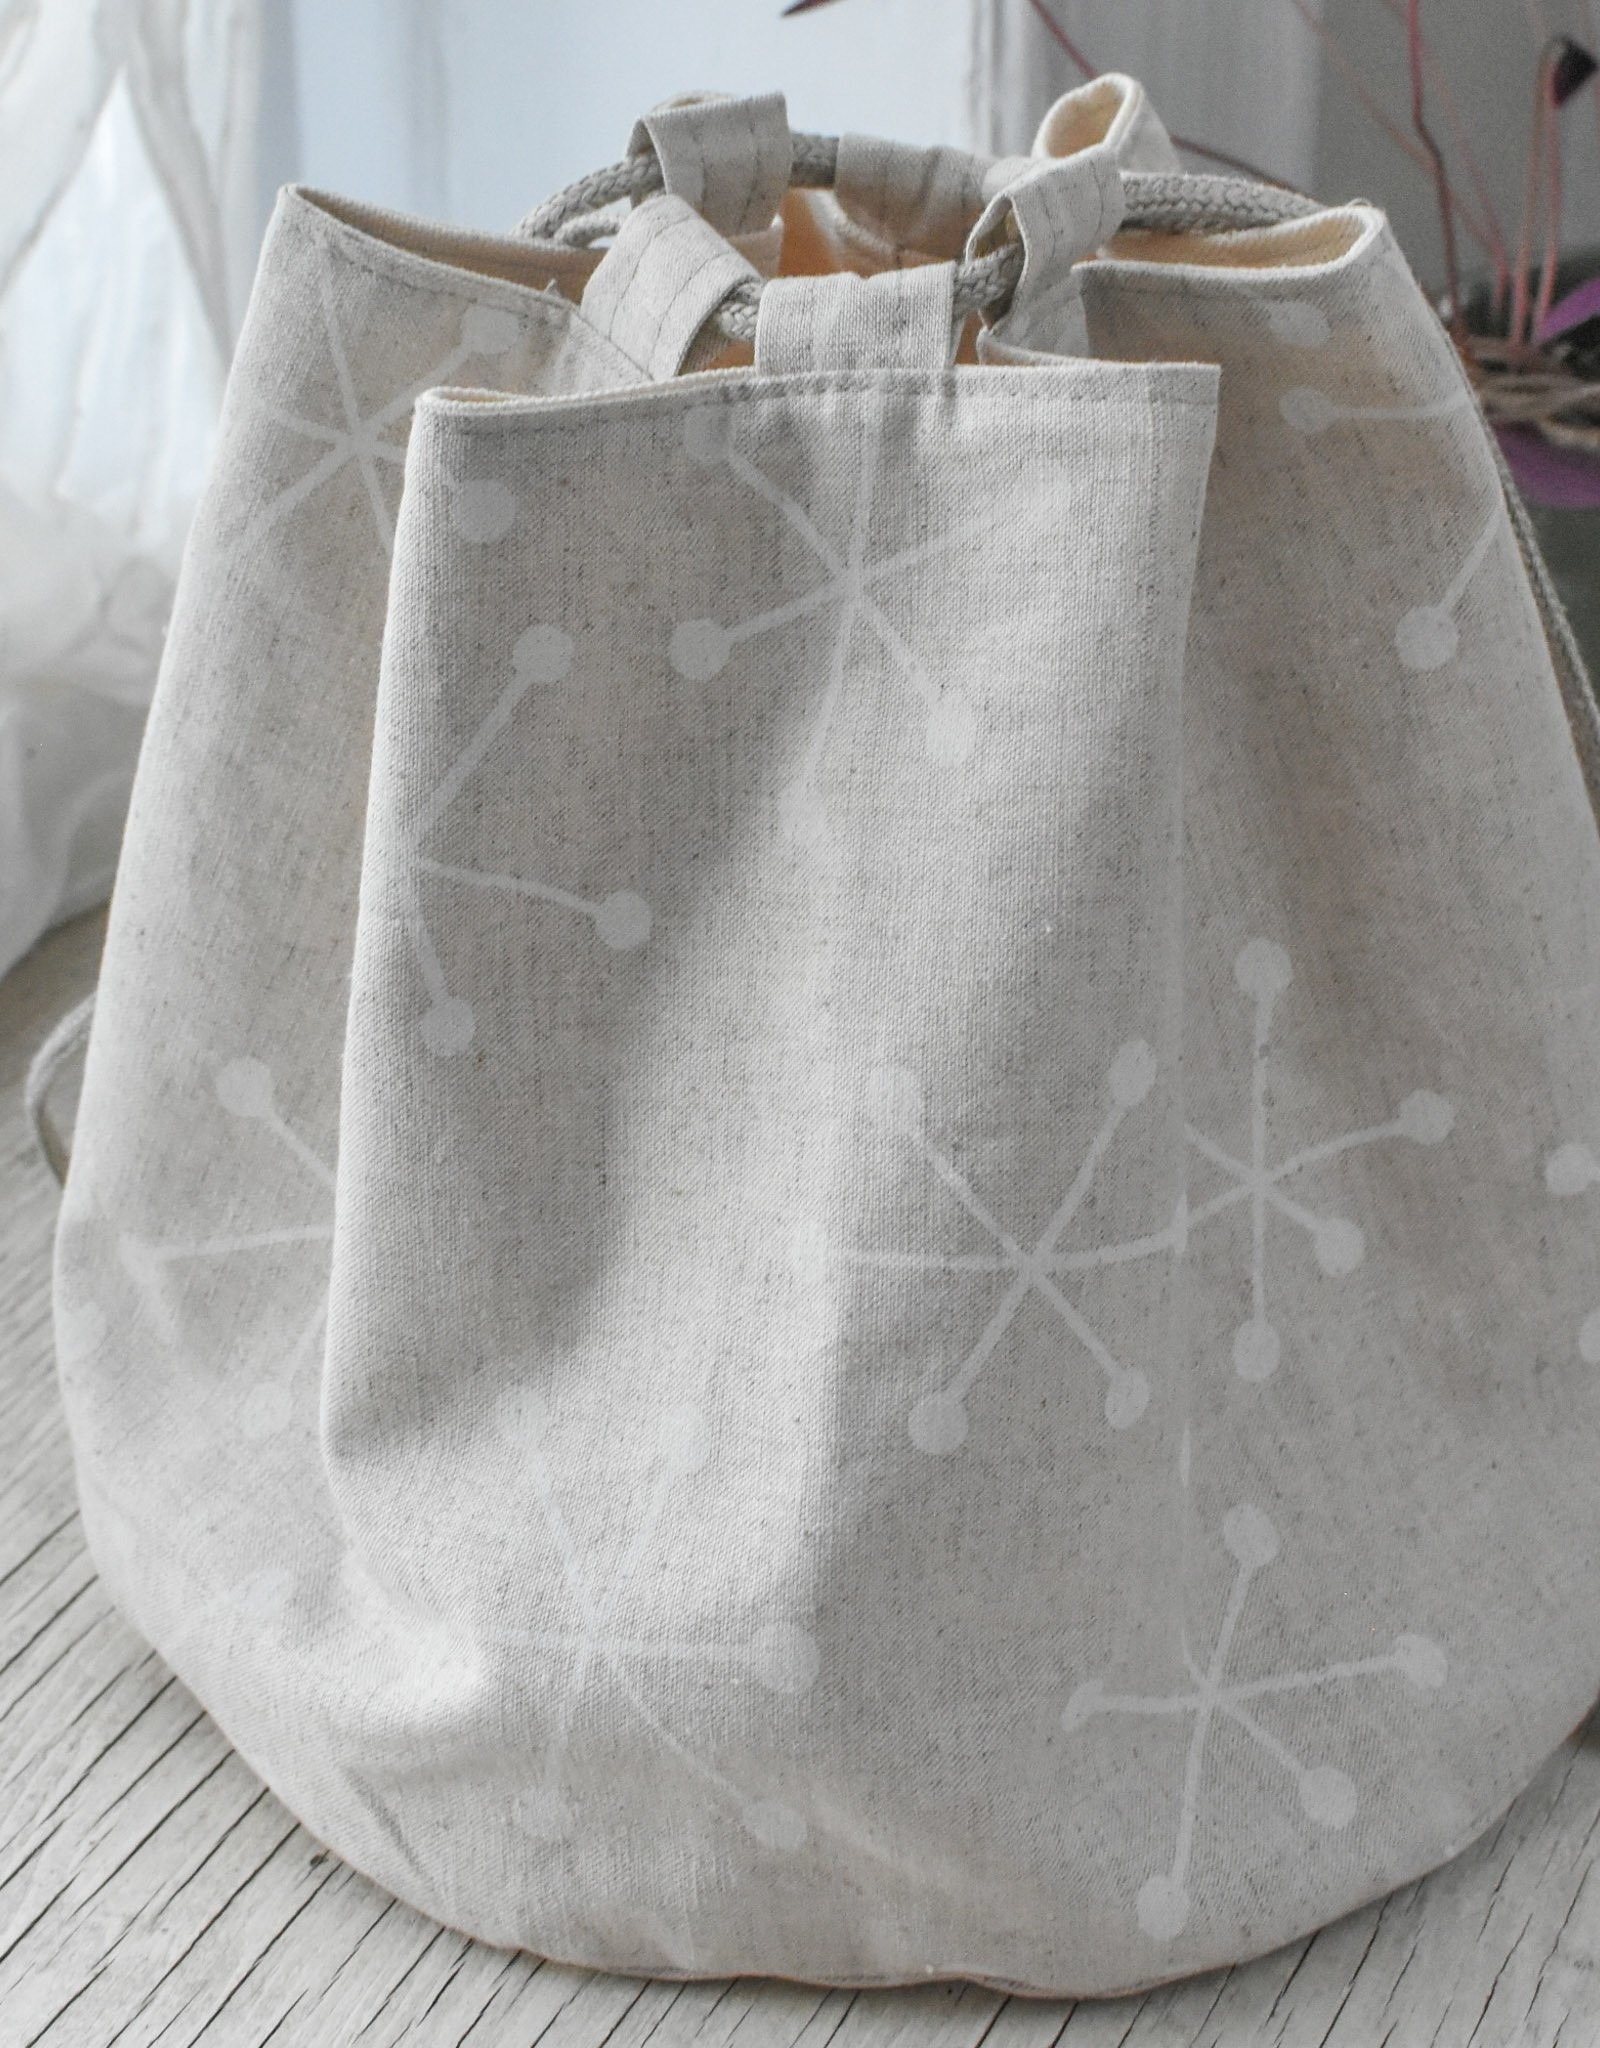 Brooklyn Haberdashery Asa Bucket Bag